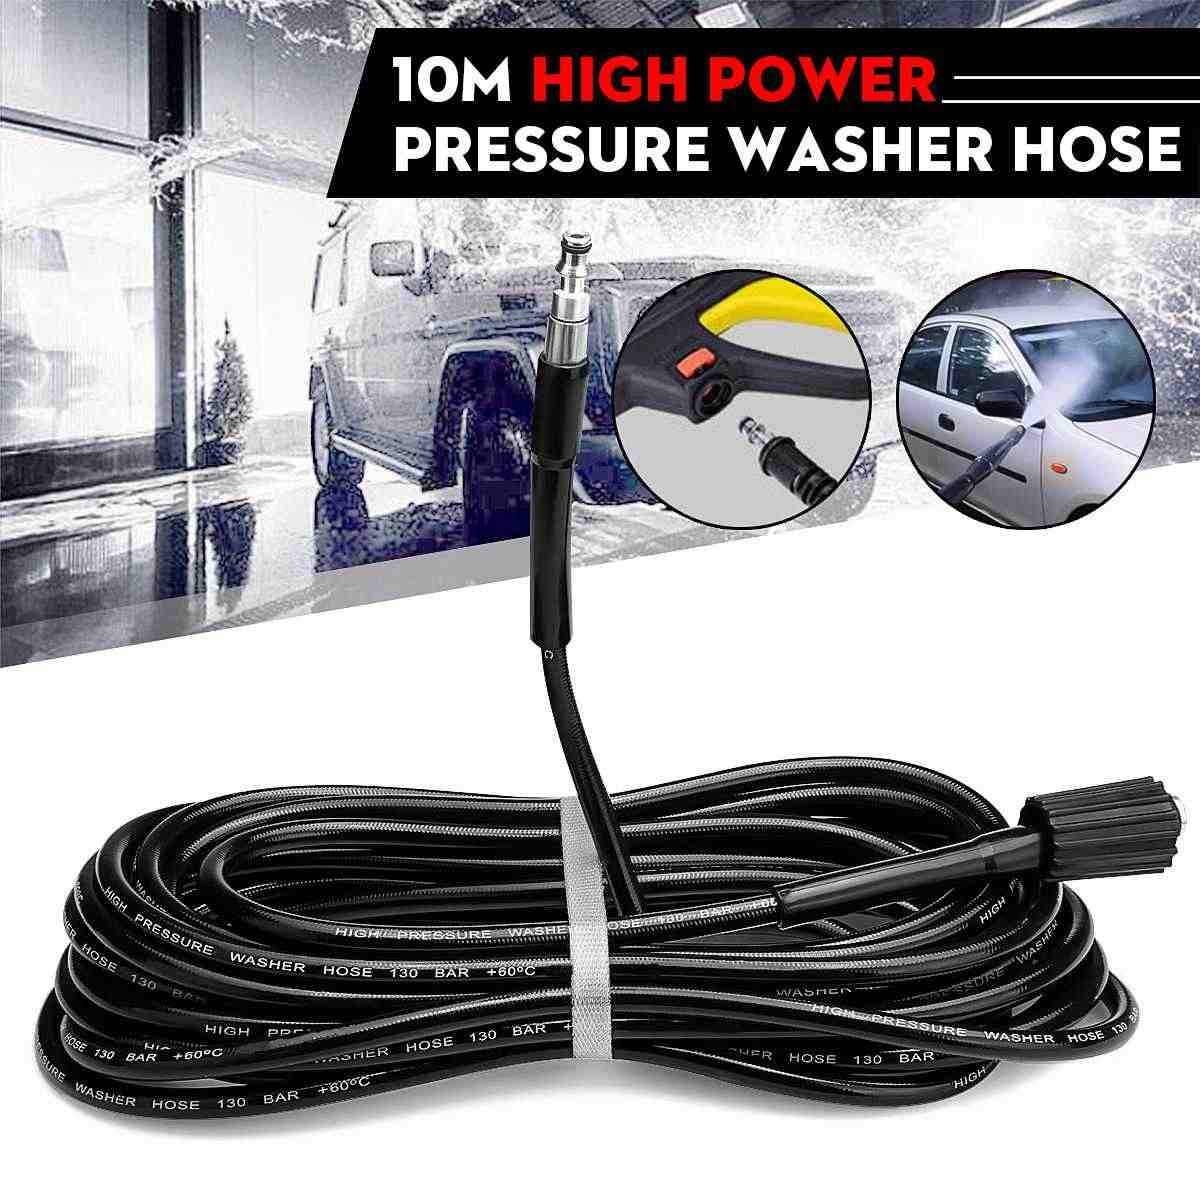 10M Steel Wire High Pressure Washer Hose  Automobiles Black 130Bar Washing Machine Car Wash Cleaning Accessories Tools For VAX